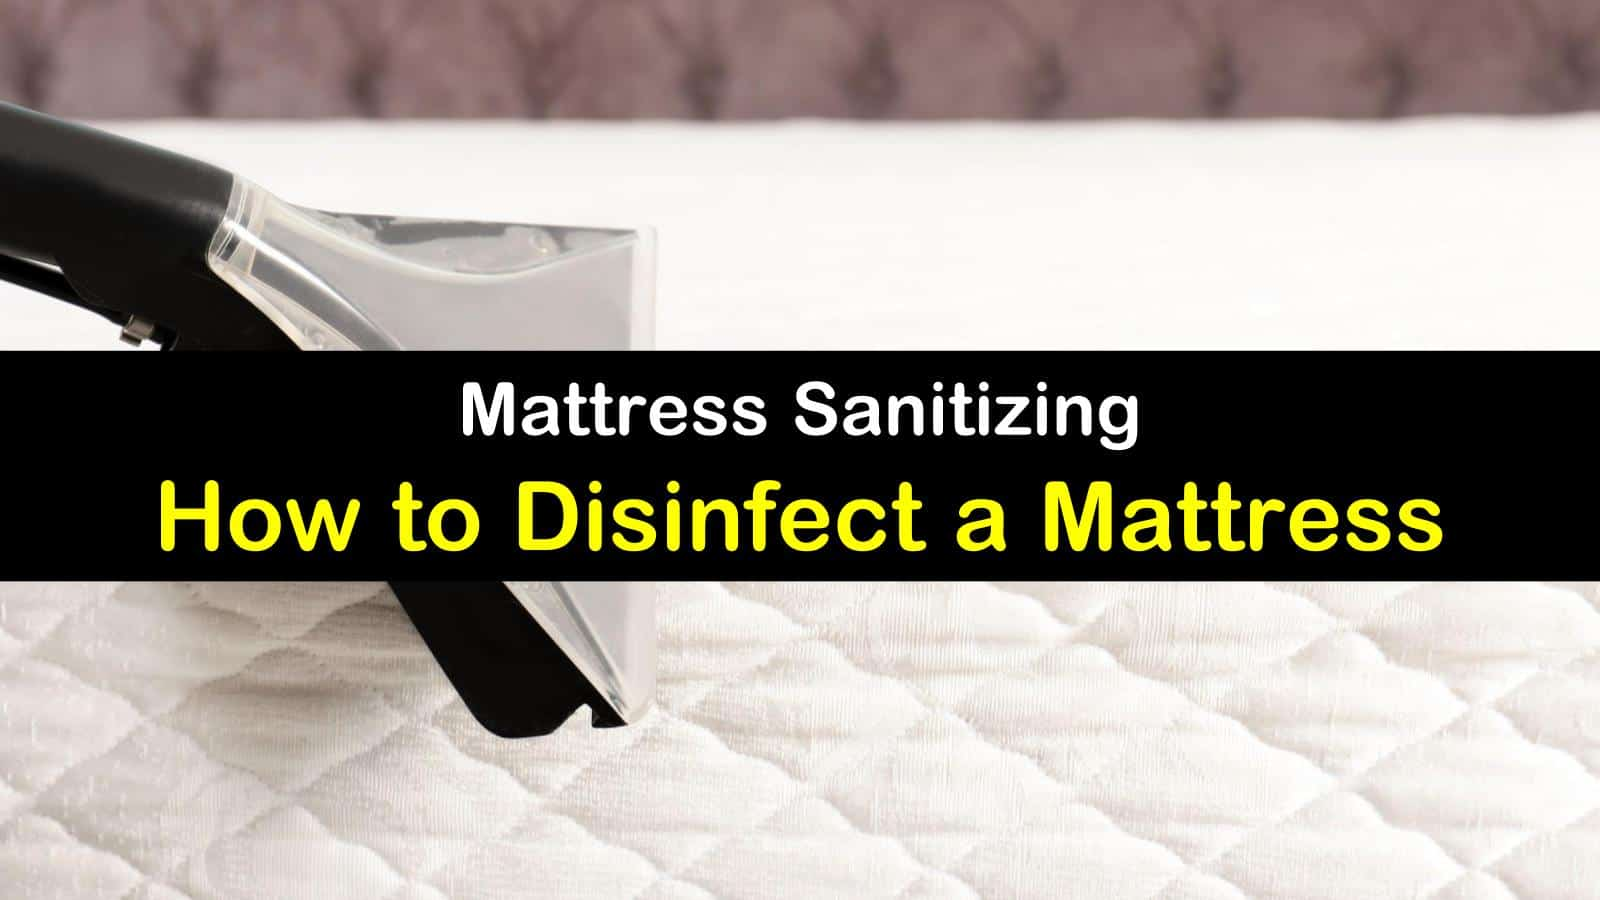 5 Clever Ways To Disinfect A Mattress